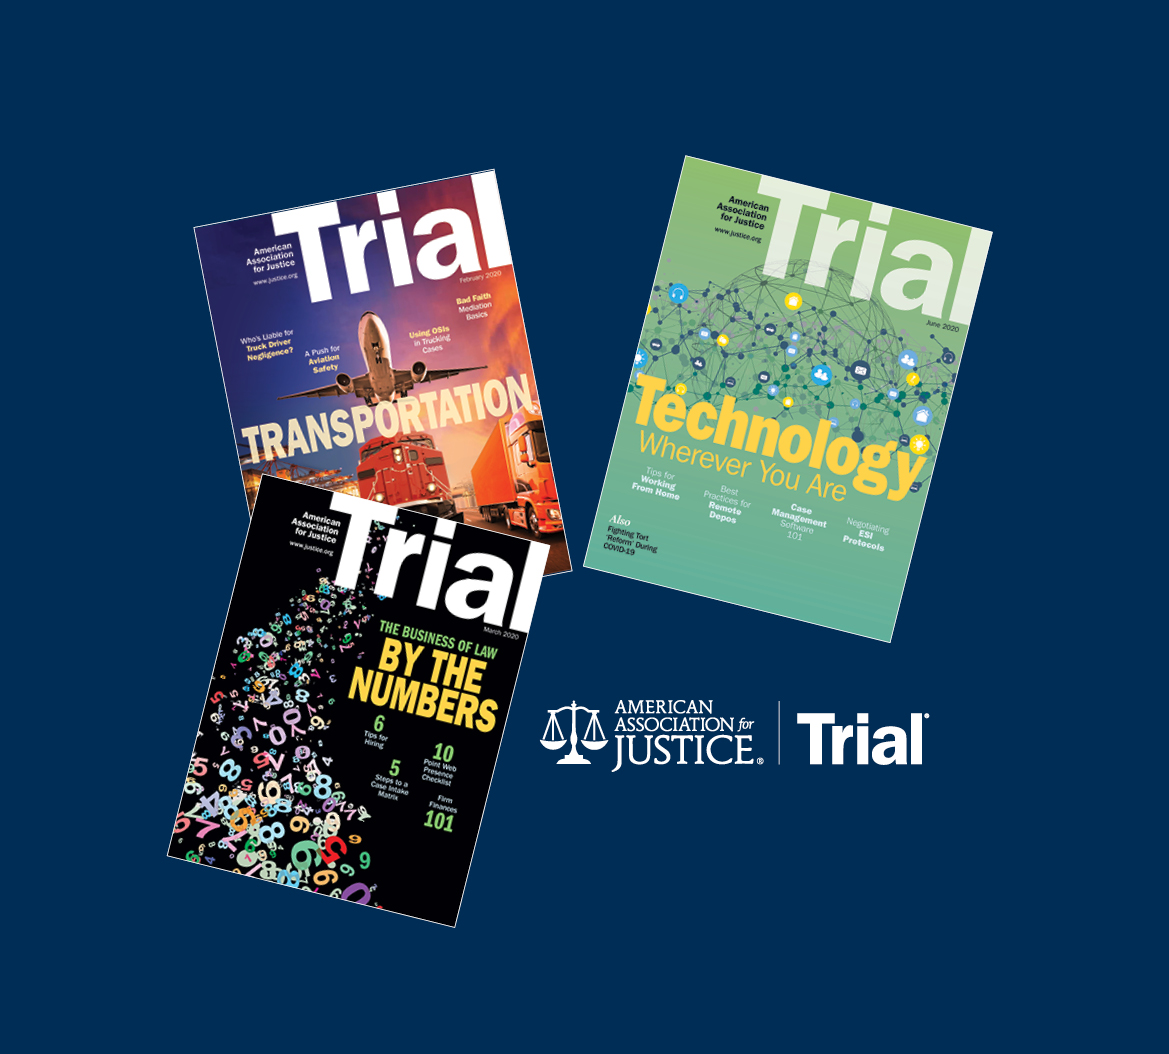 Covers of three recent issues of Trial magazine on a navy blue background.